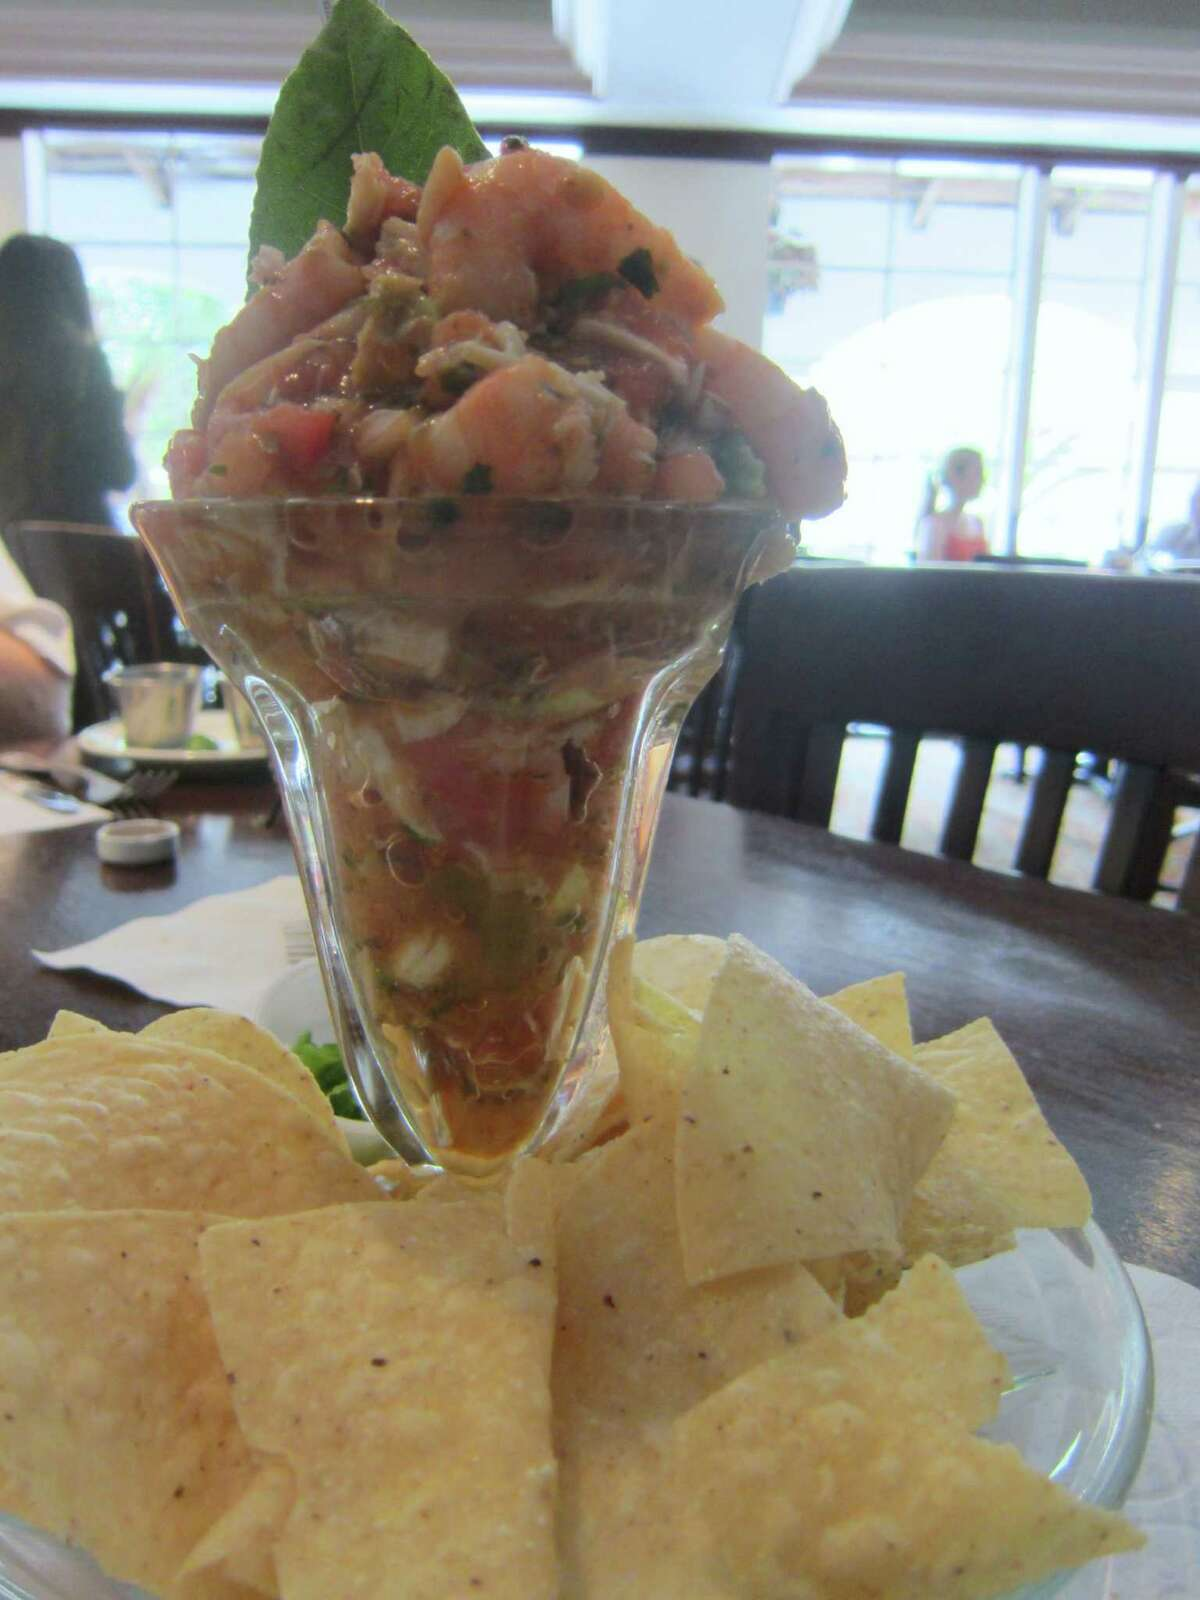 The Campechana De Mariscos at Goode Company Seafood. OK, the star of the show is the citrus-marinated shrimp and crab in this rich seafood salad, but the tortilla chips offer the texture that keeps it from being a one-note meal.